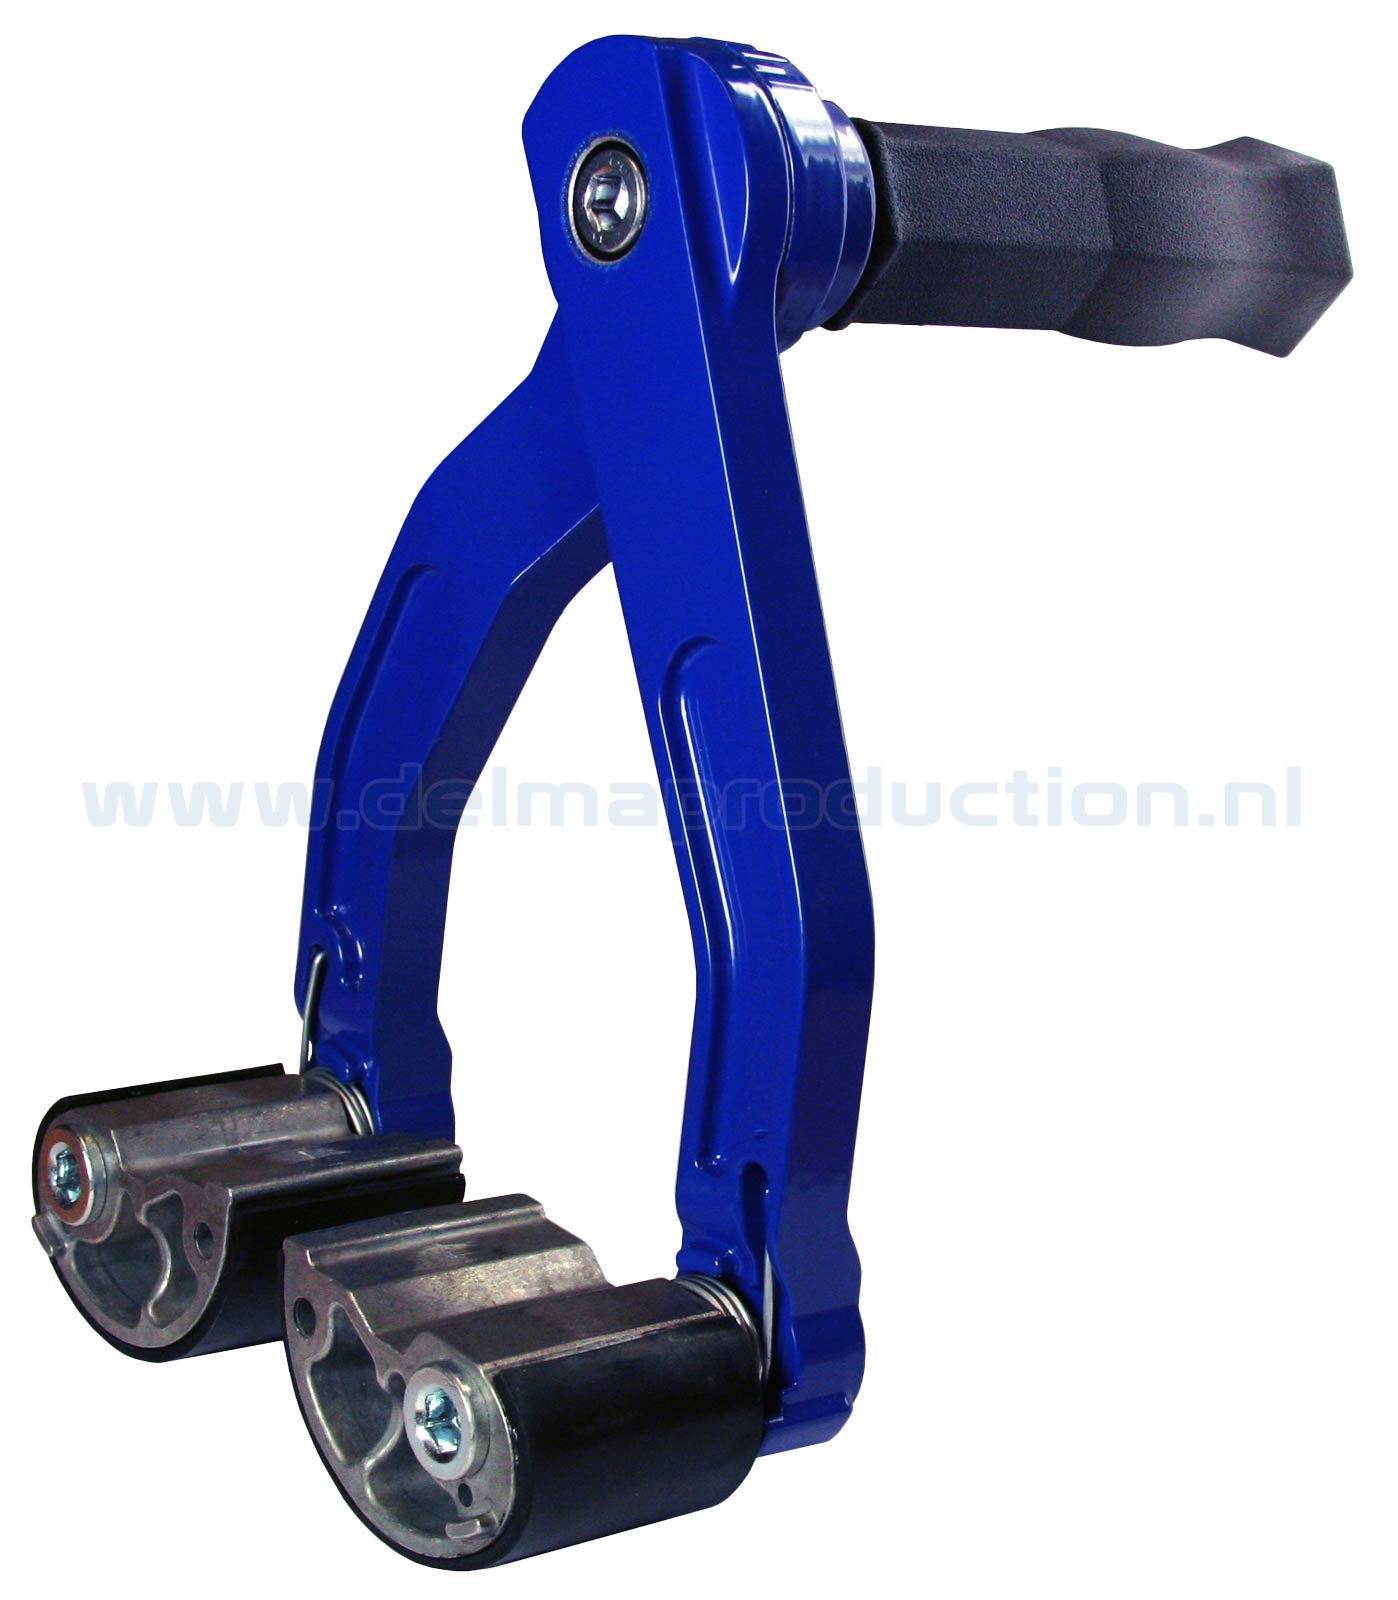 Panel Carrier, adjustable 0 till 240 mm. Clamping range adjustable from 0 to 240 mm.  (1)